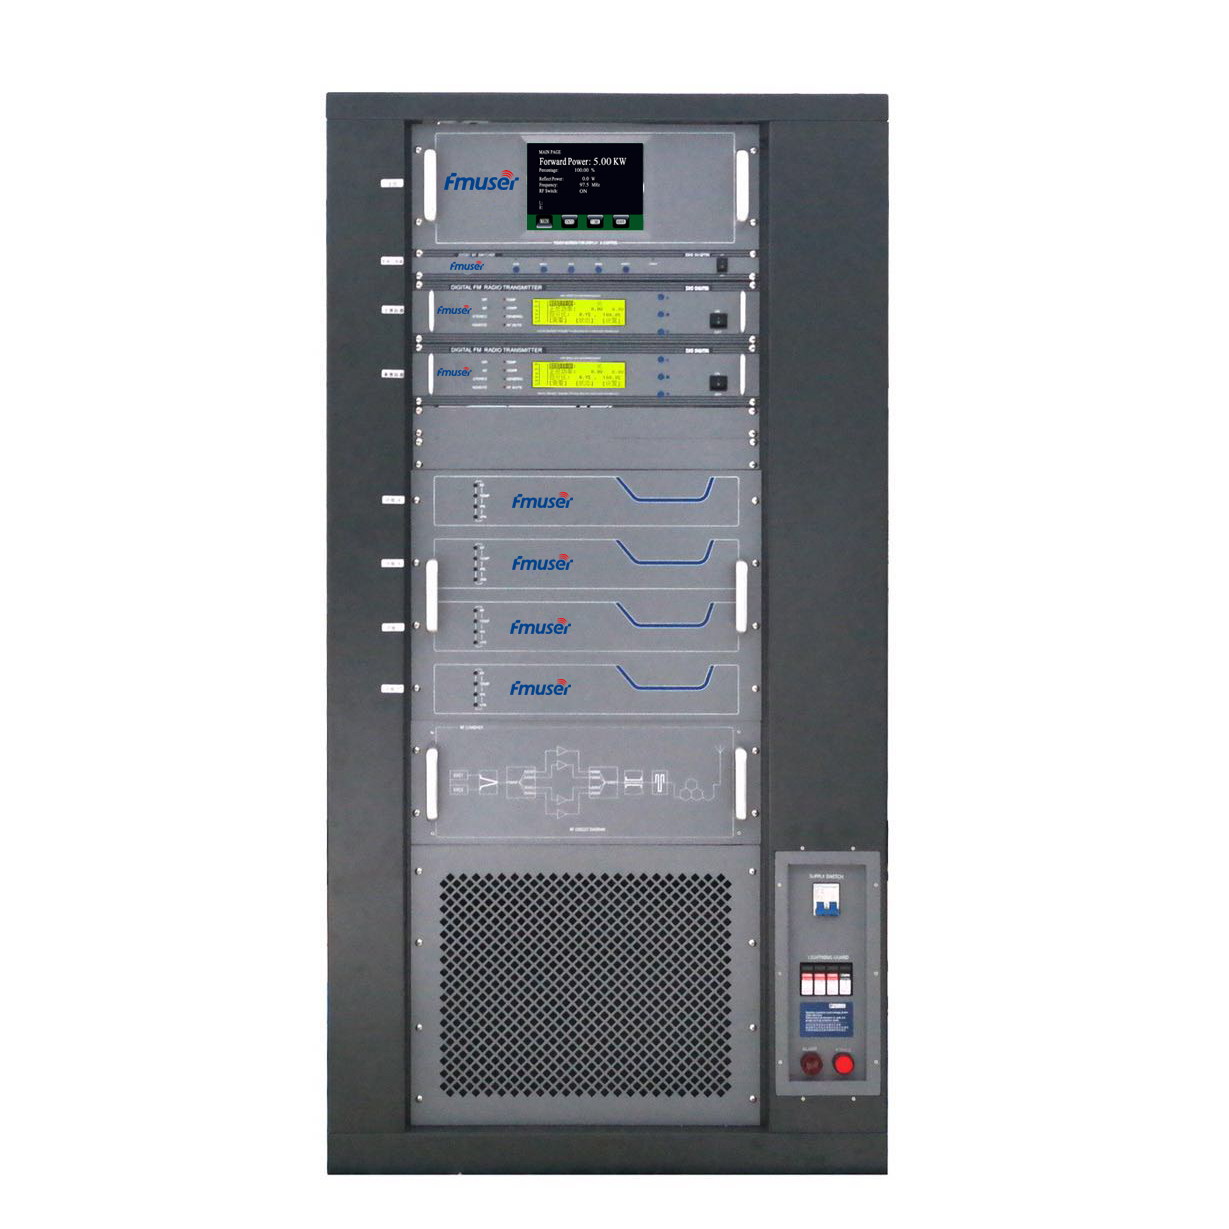 FMUSER FU618F-5kw 5000W 5KW Professional FM broadcast transmitter Rack Mount AES / EBU wiith AGC for City Radio Station